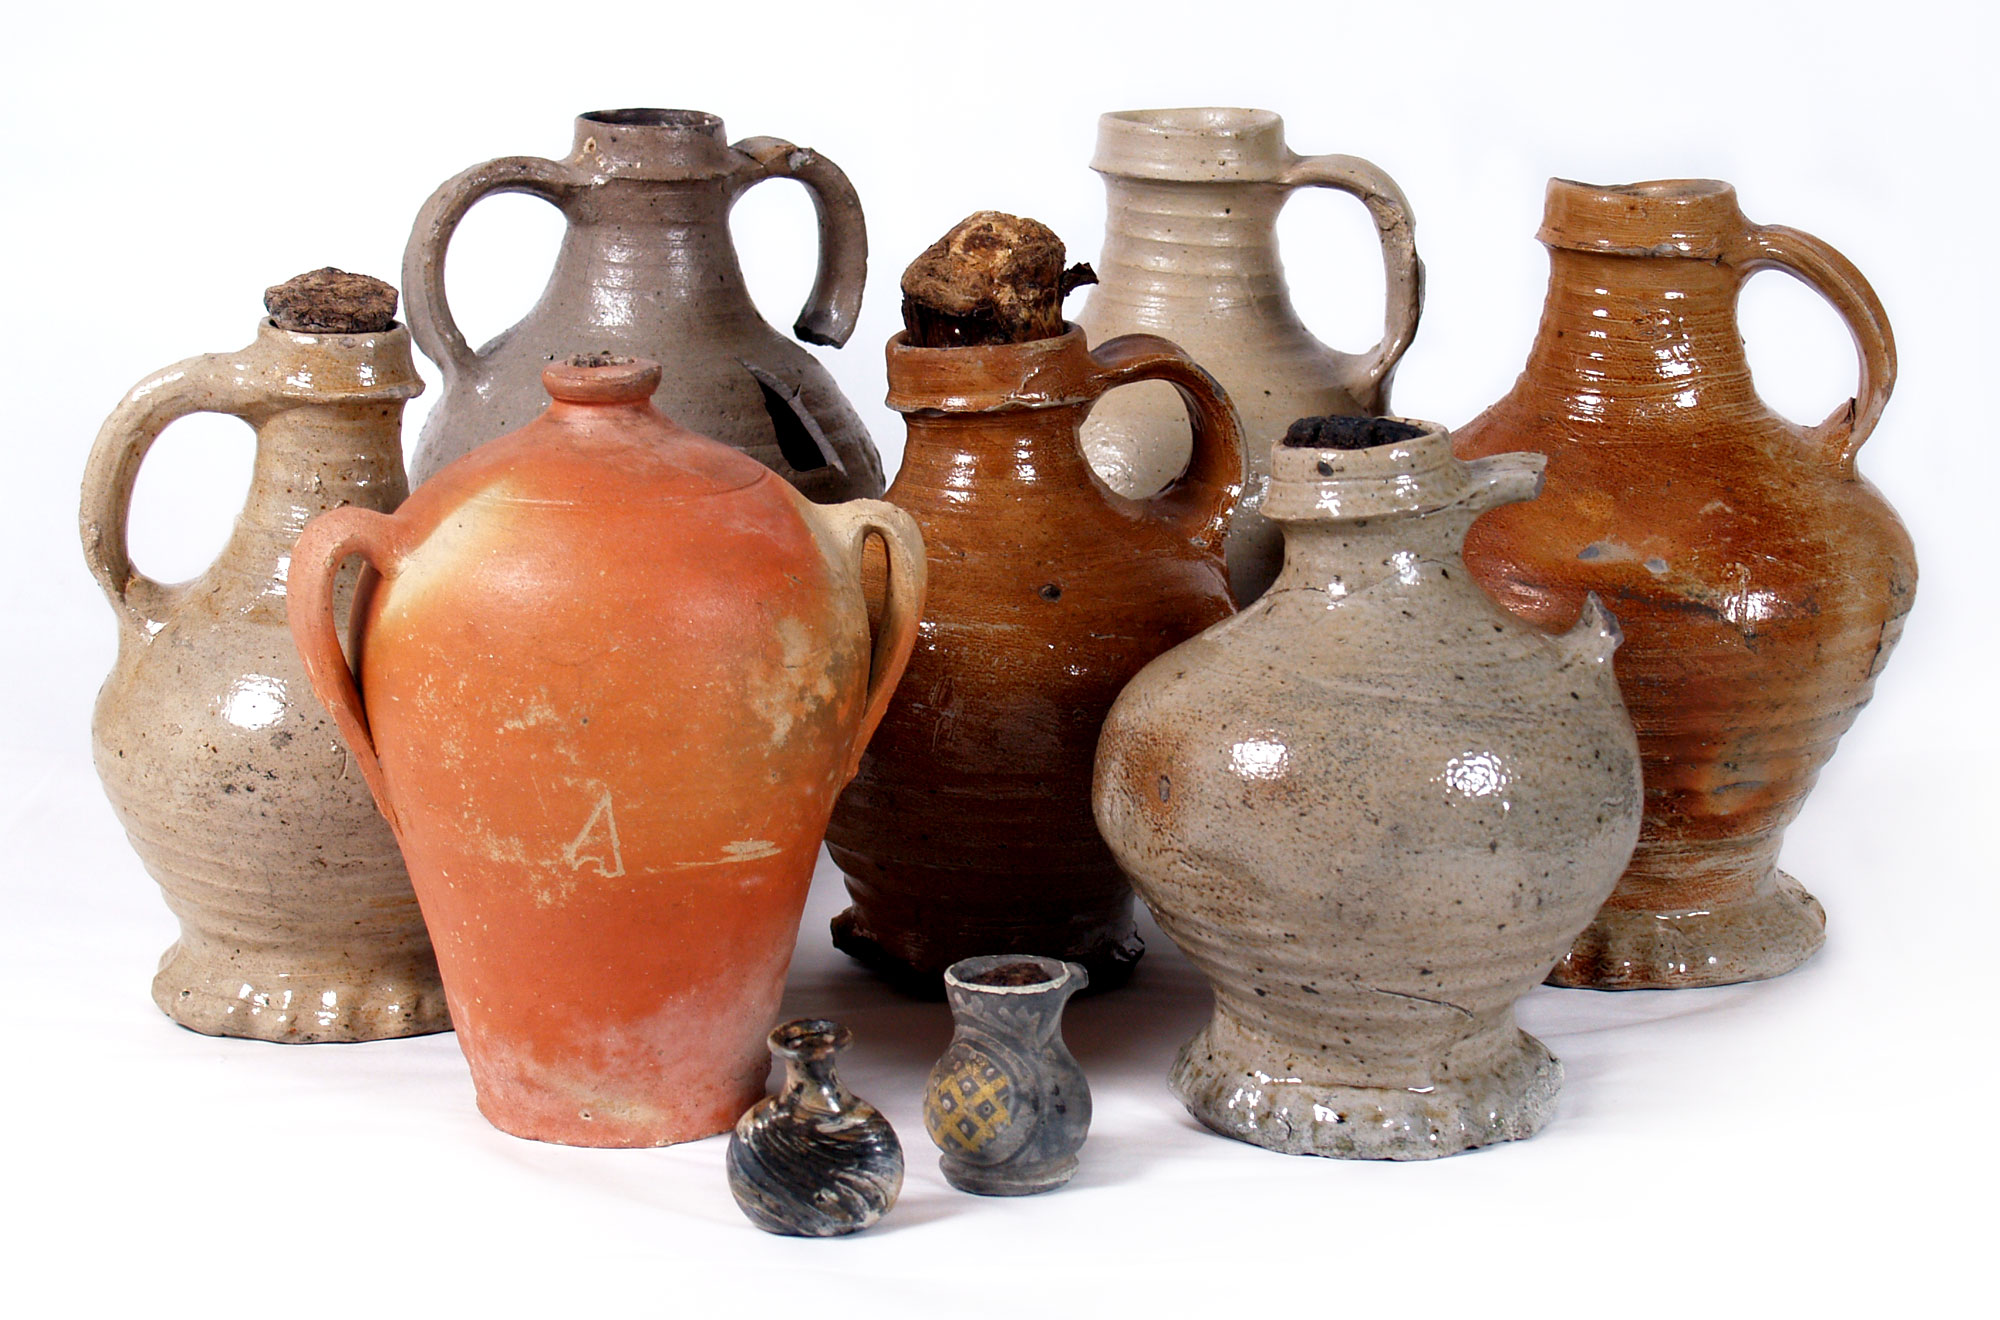 a photo of a group of ceramic jars